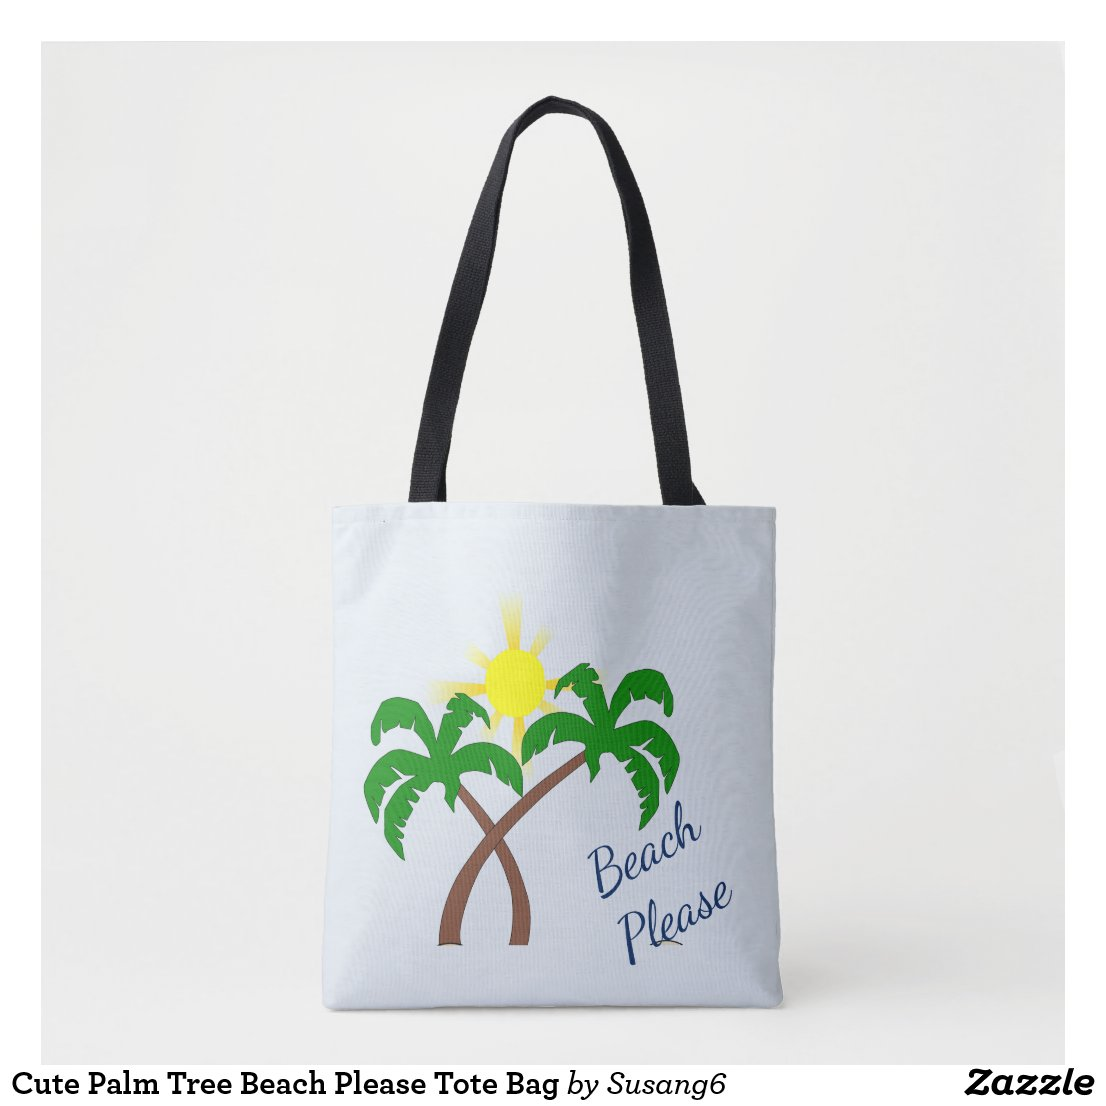 Cute Palm Tree Beach Please Tote Bag